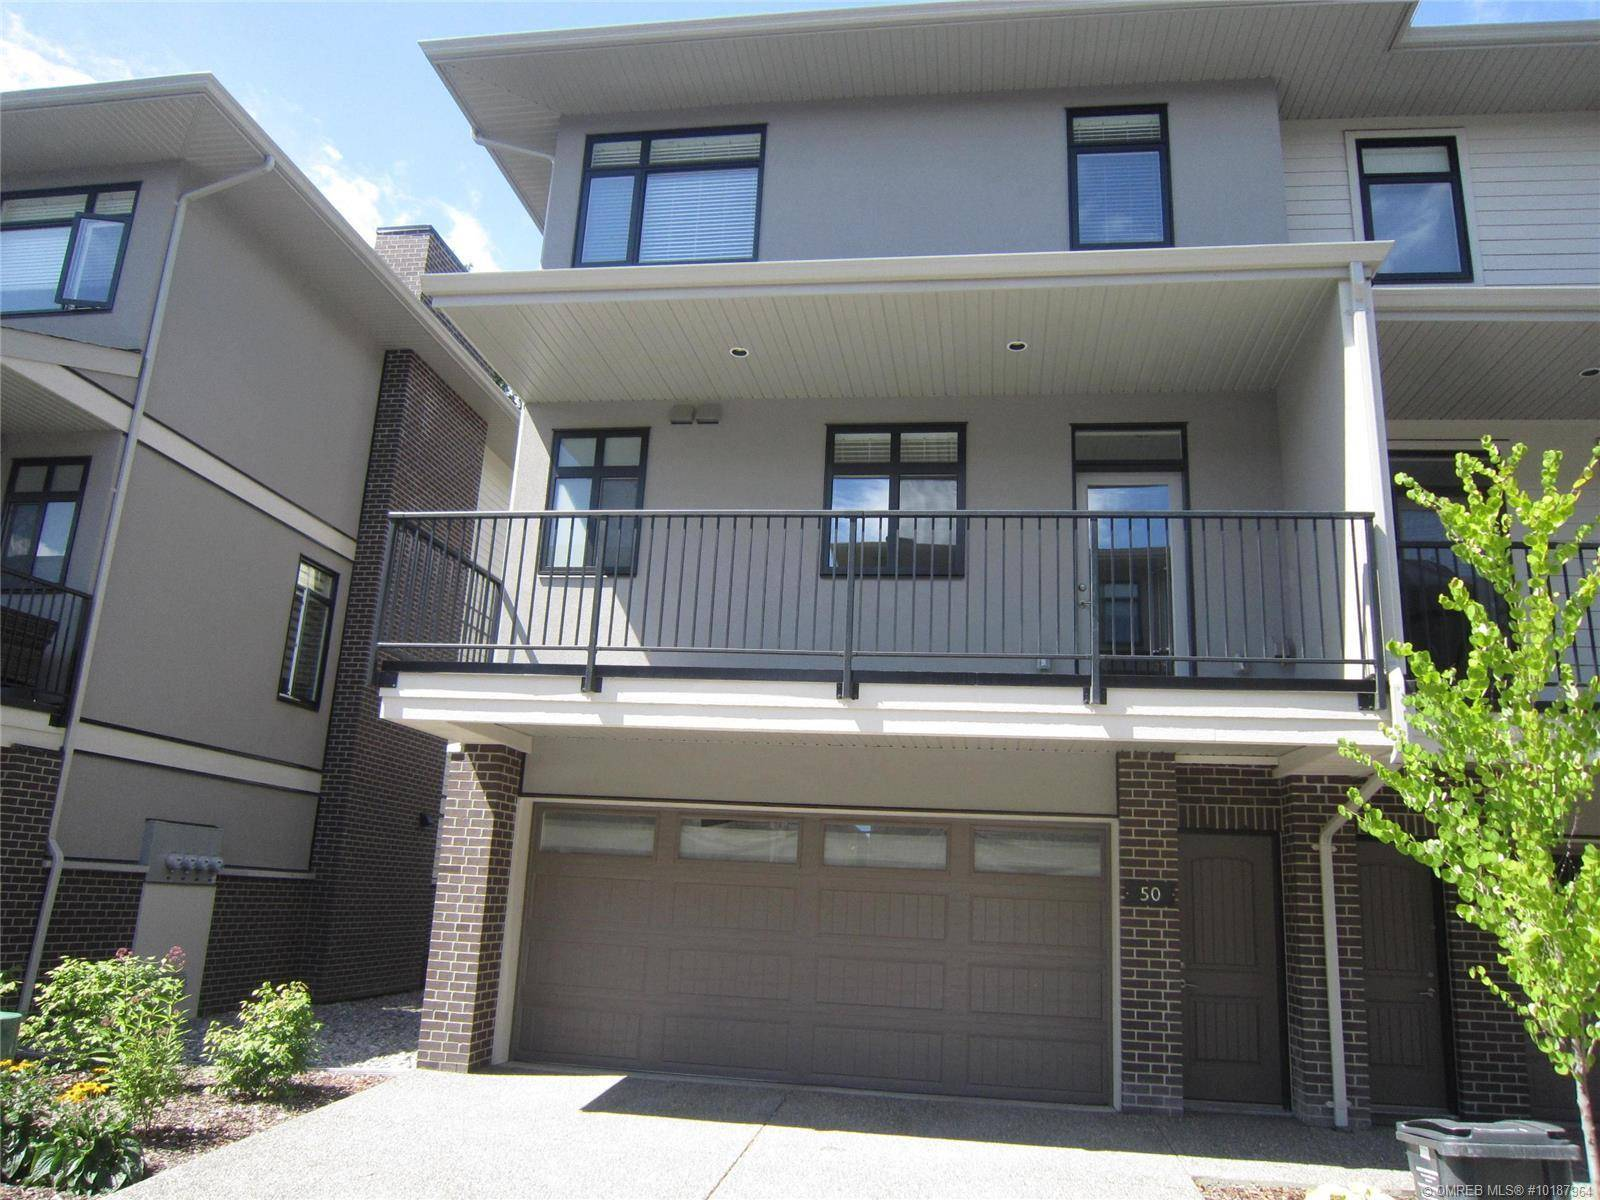 Townhouse for sale at 1102 Cameron Ave Unit 50 Kelowna British Columbia - MLS: 10187964